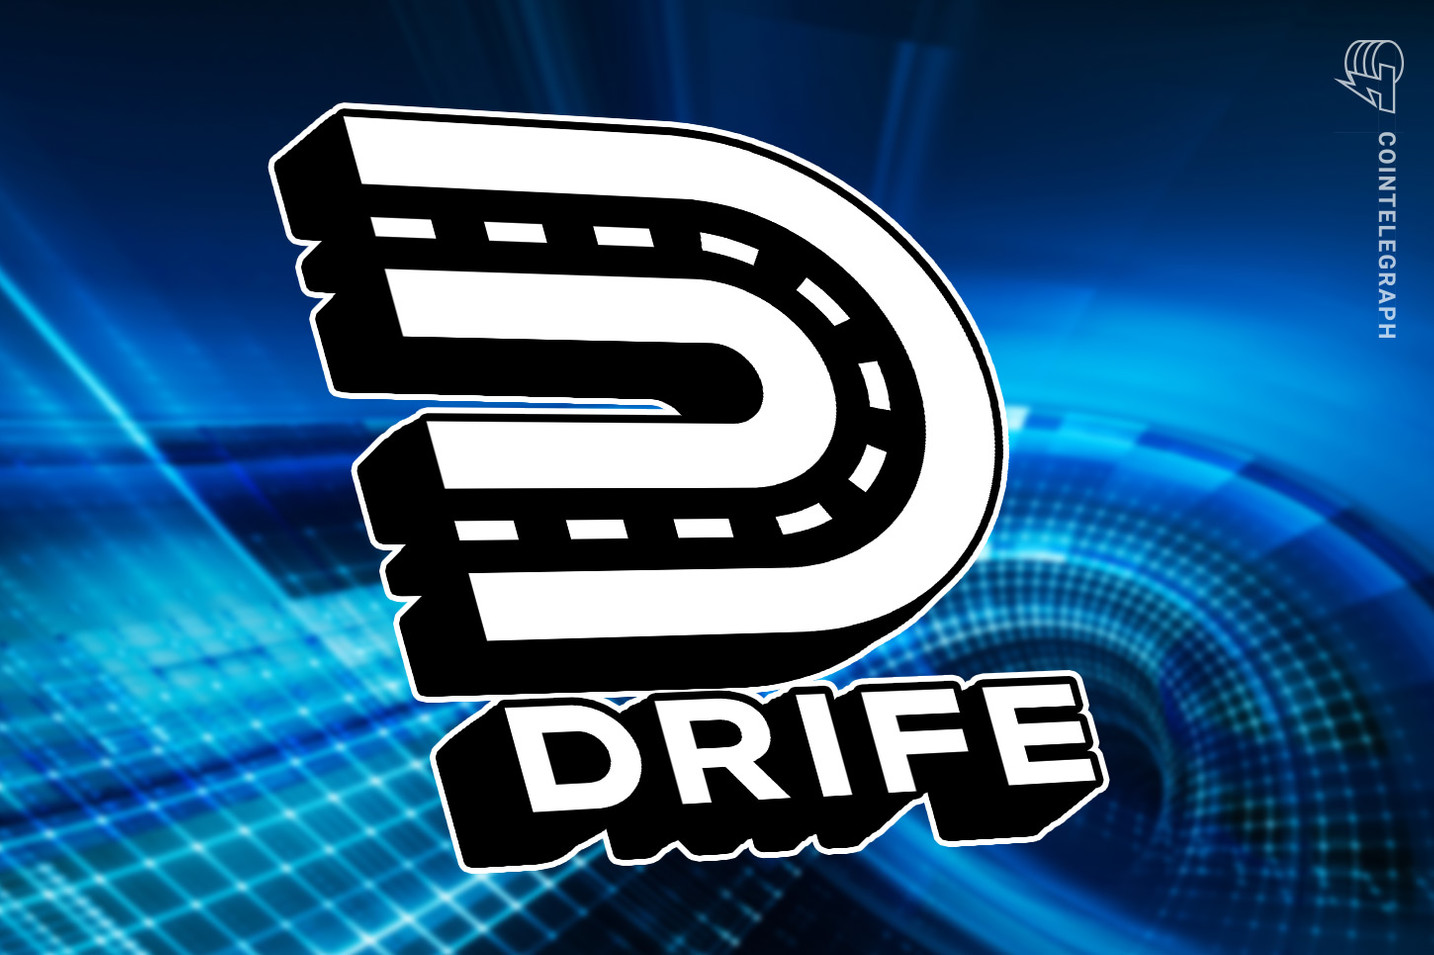 How Drife and blockchain are disrupting the ride-sharing industry